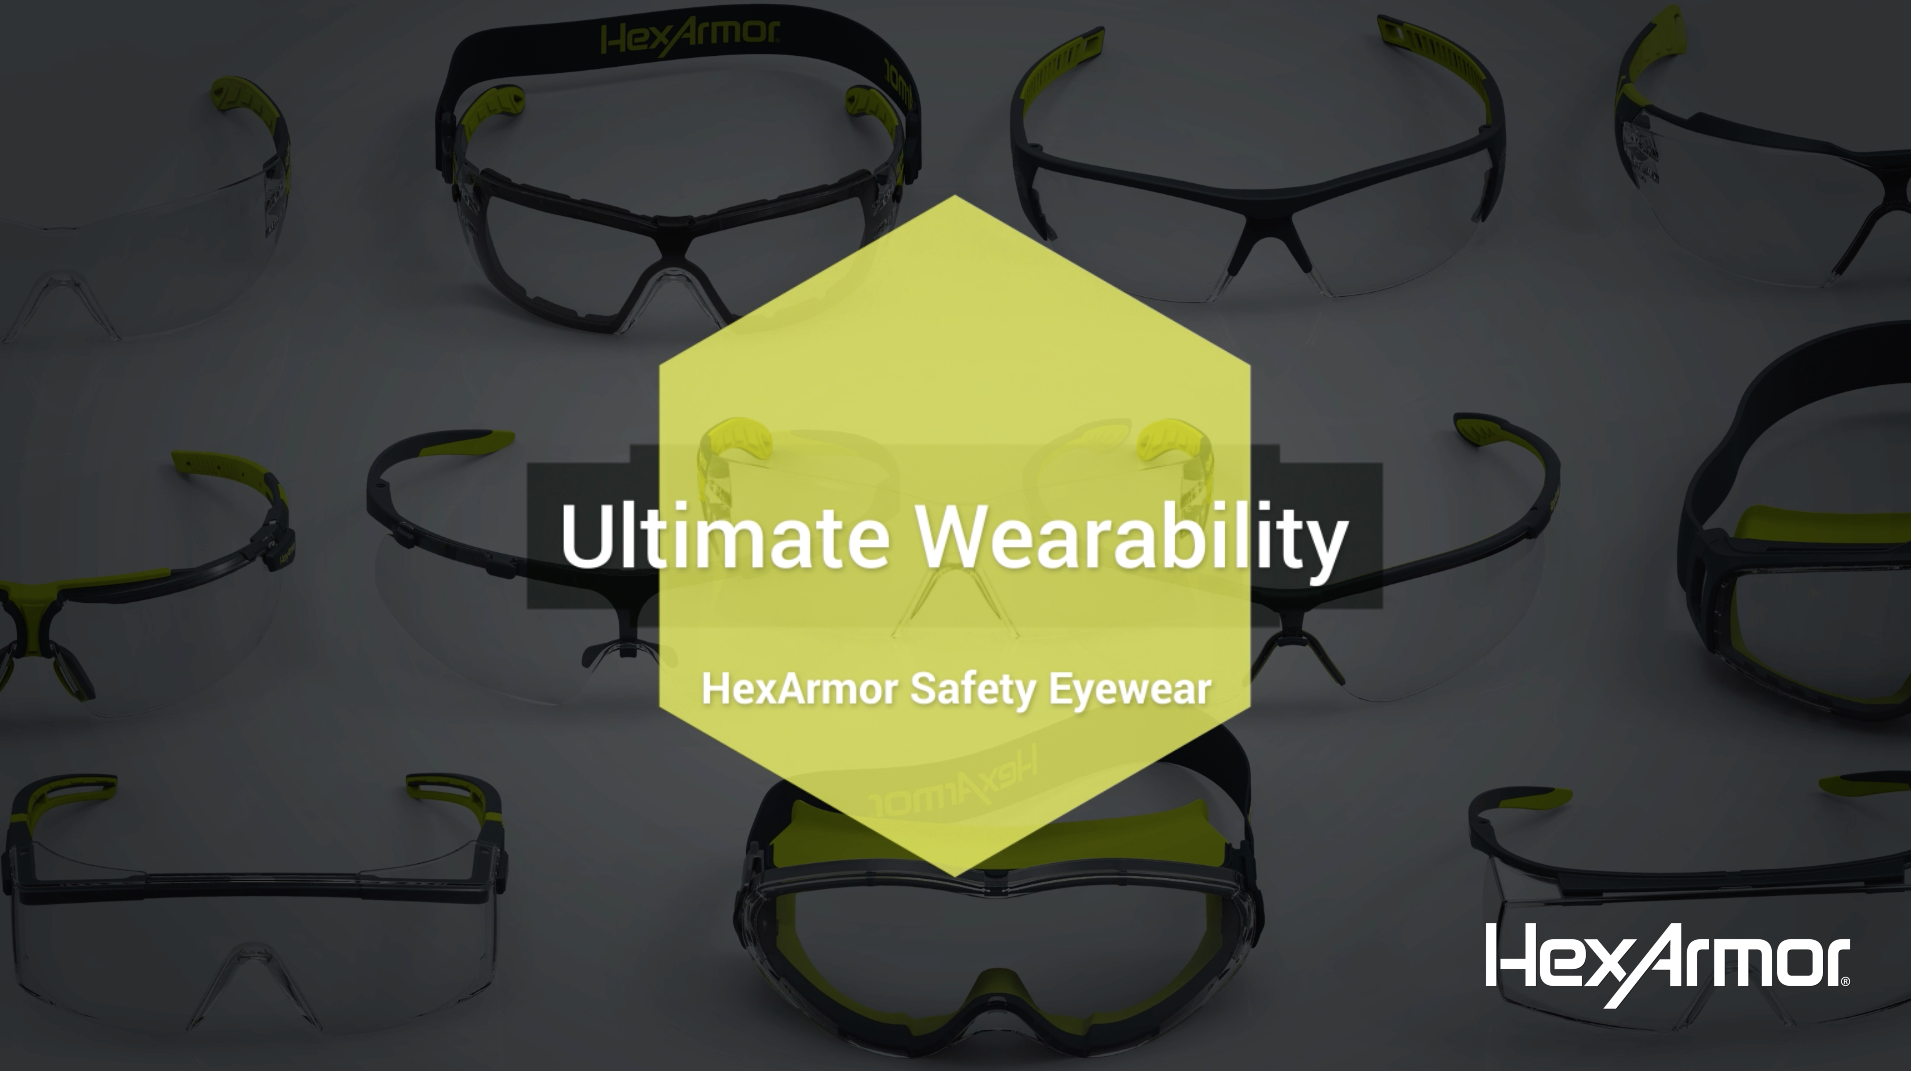 Wearability — A HexArmor Safety Eyewear Exclusive